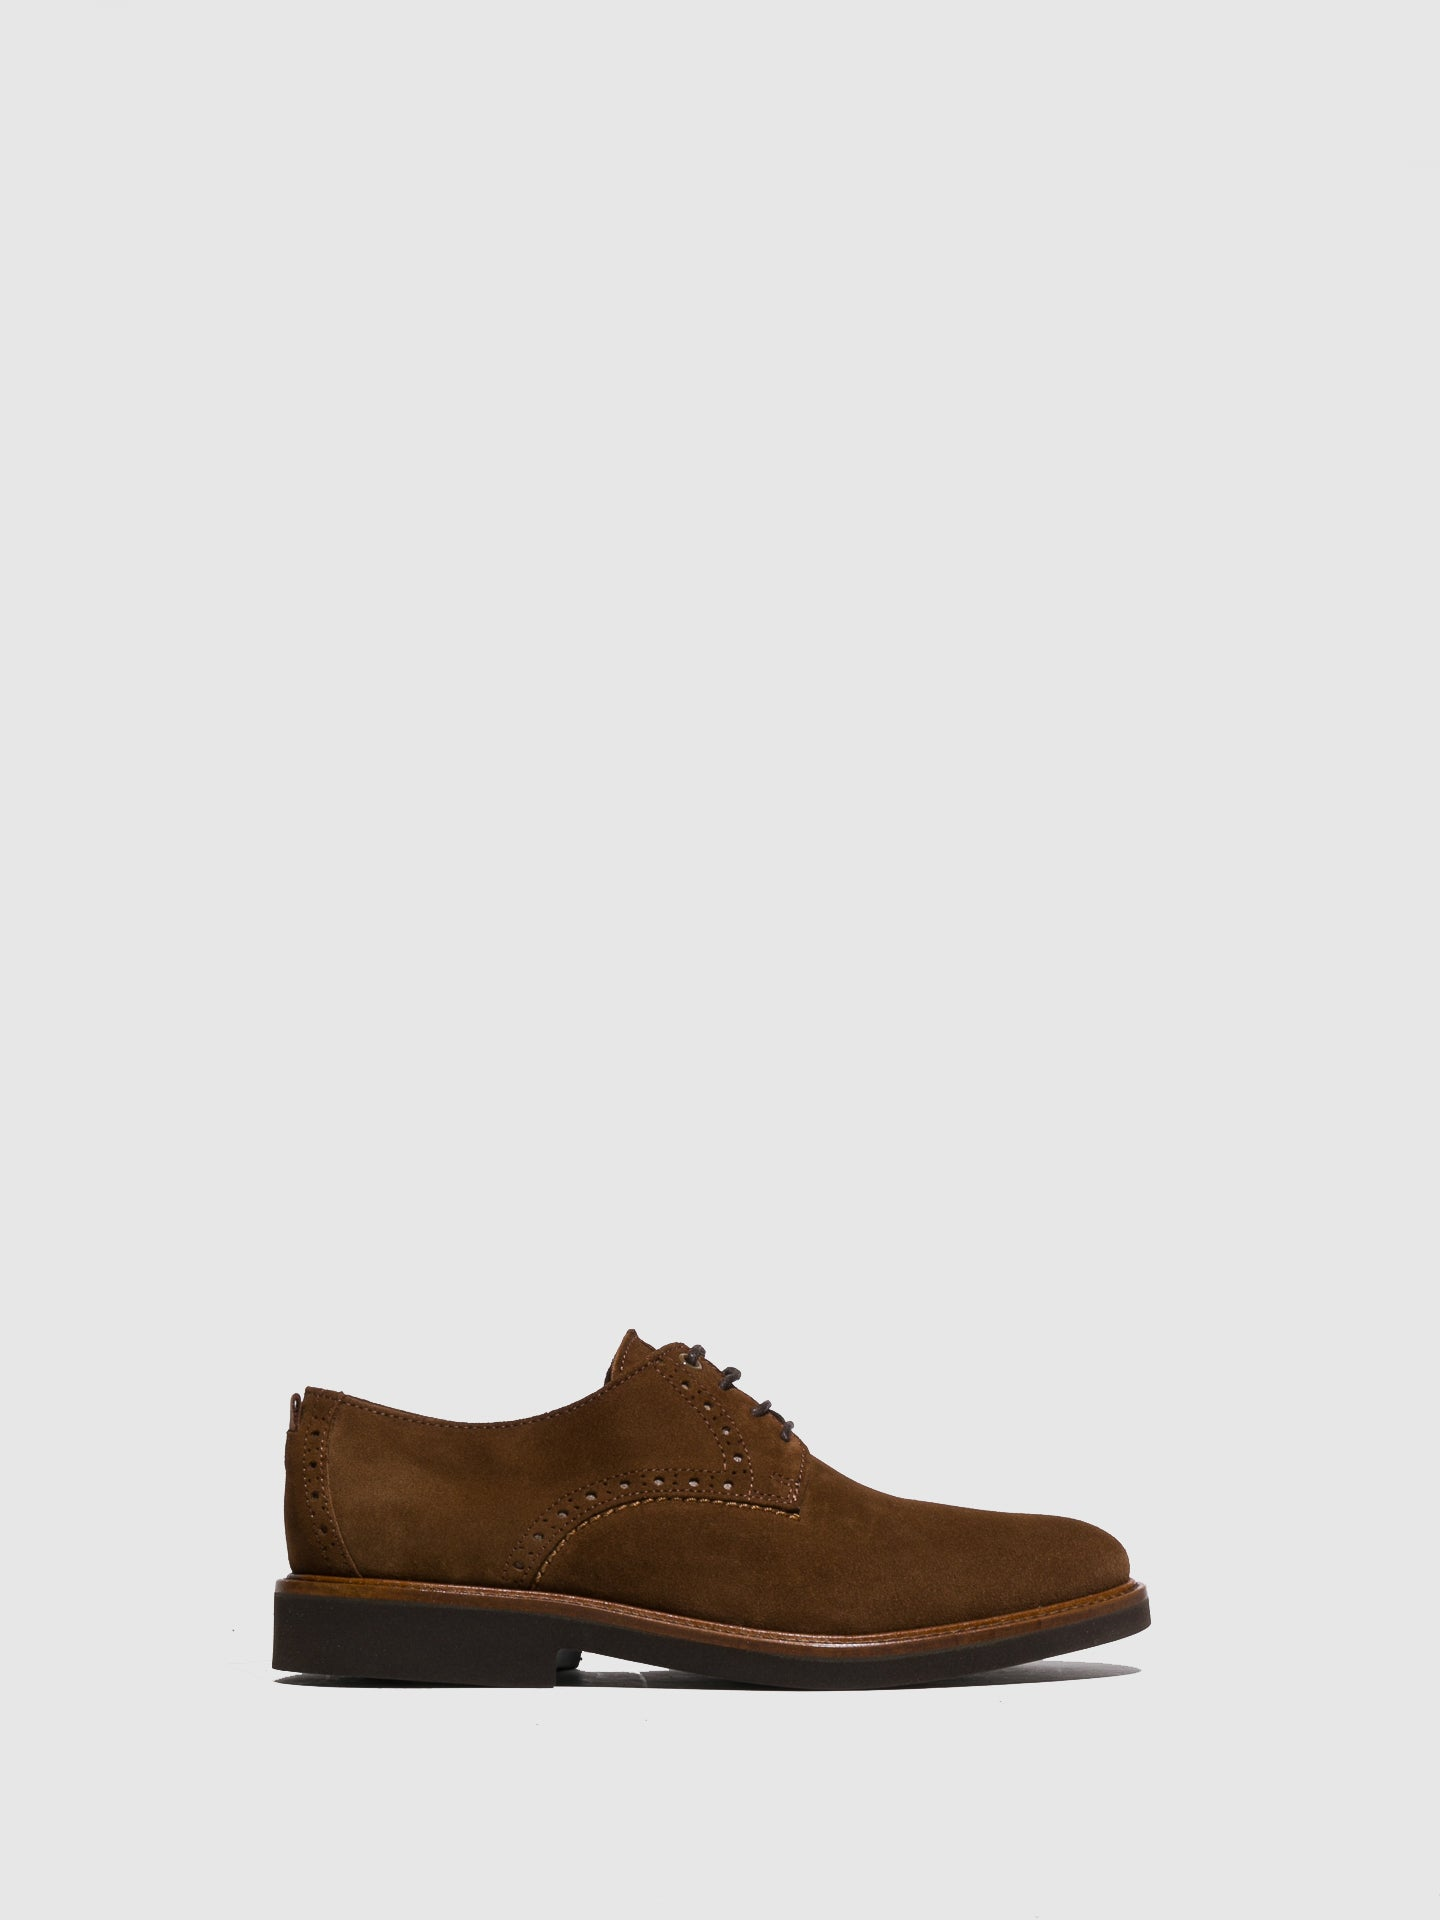 Foreva Camel Lace-up Shoes